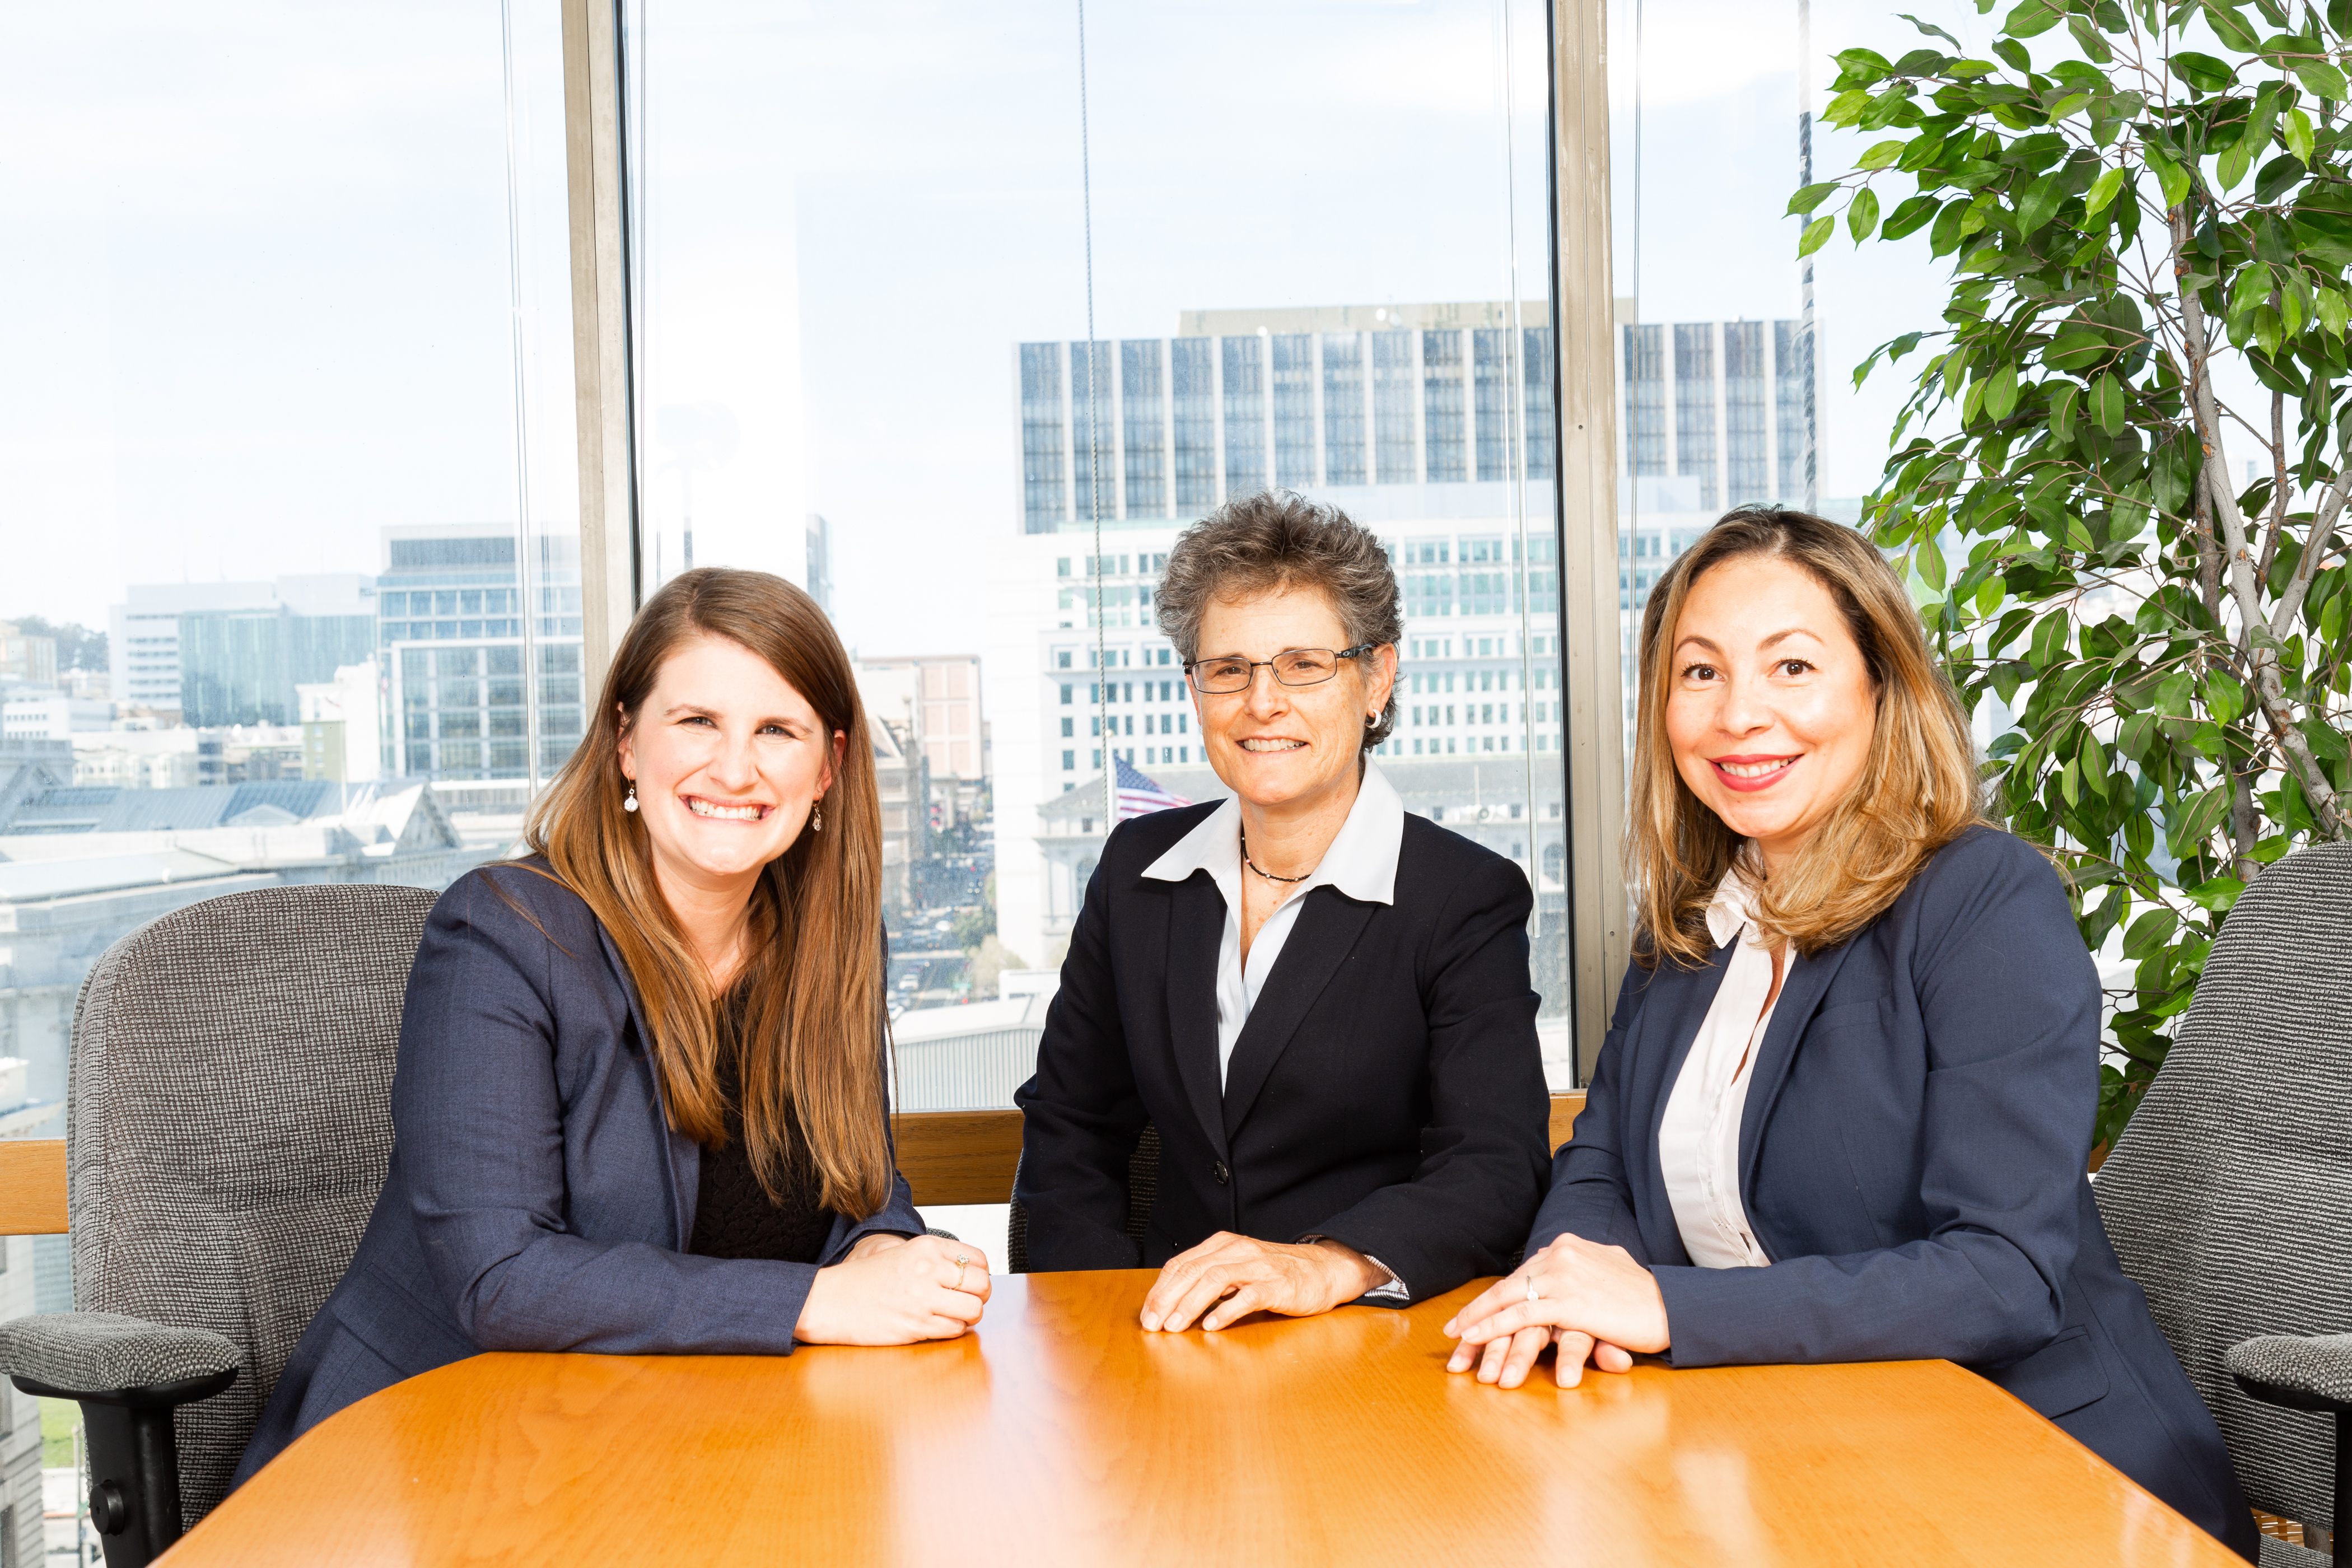 Workers' Compensation Attorneys in San Francisco